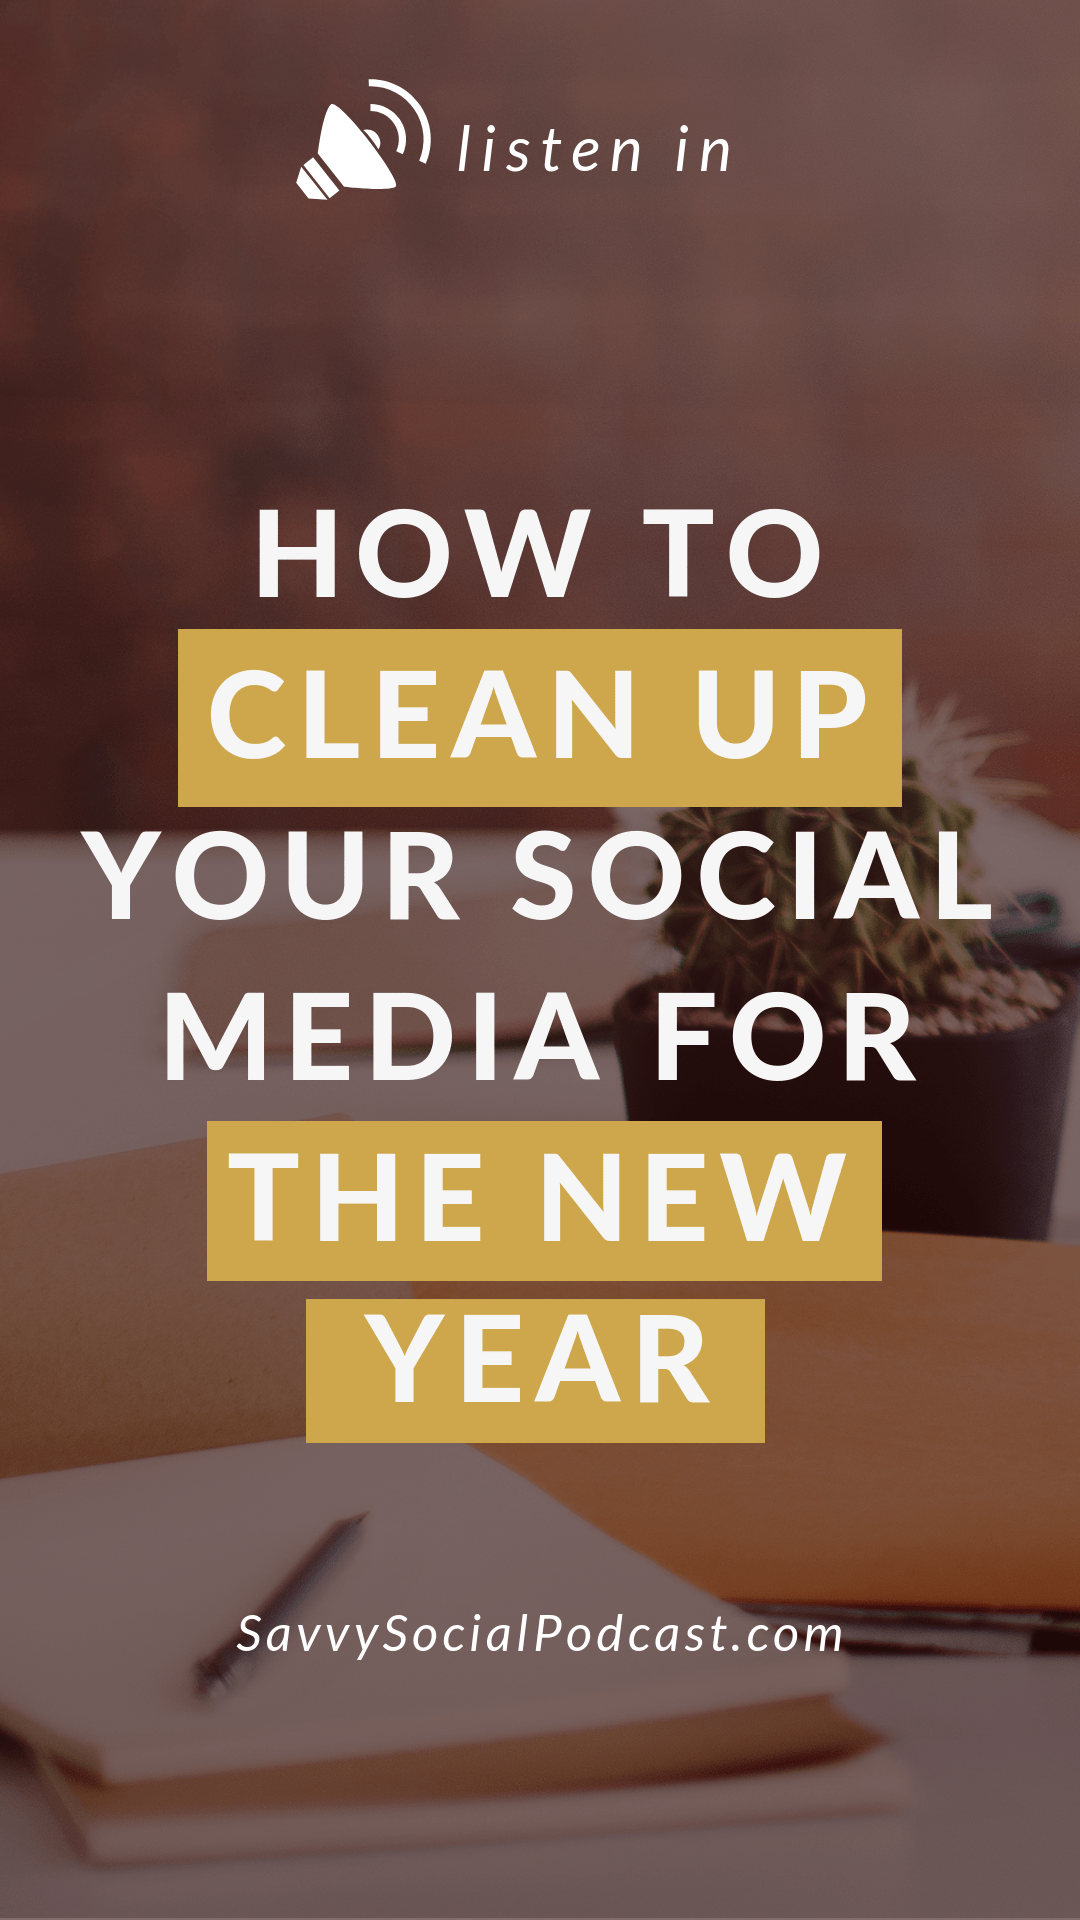 As the year ends, it's important to review what's working for you and what's not so you can make way for a new year and a new you! From your profile to your analytics, it's time to clean up your social media, and I've got four easy steps to help make that happen.